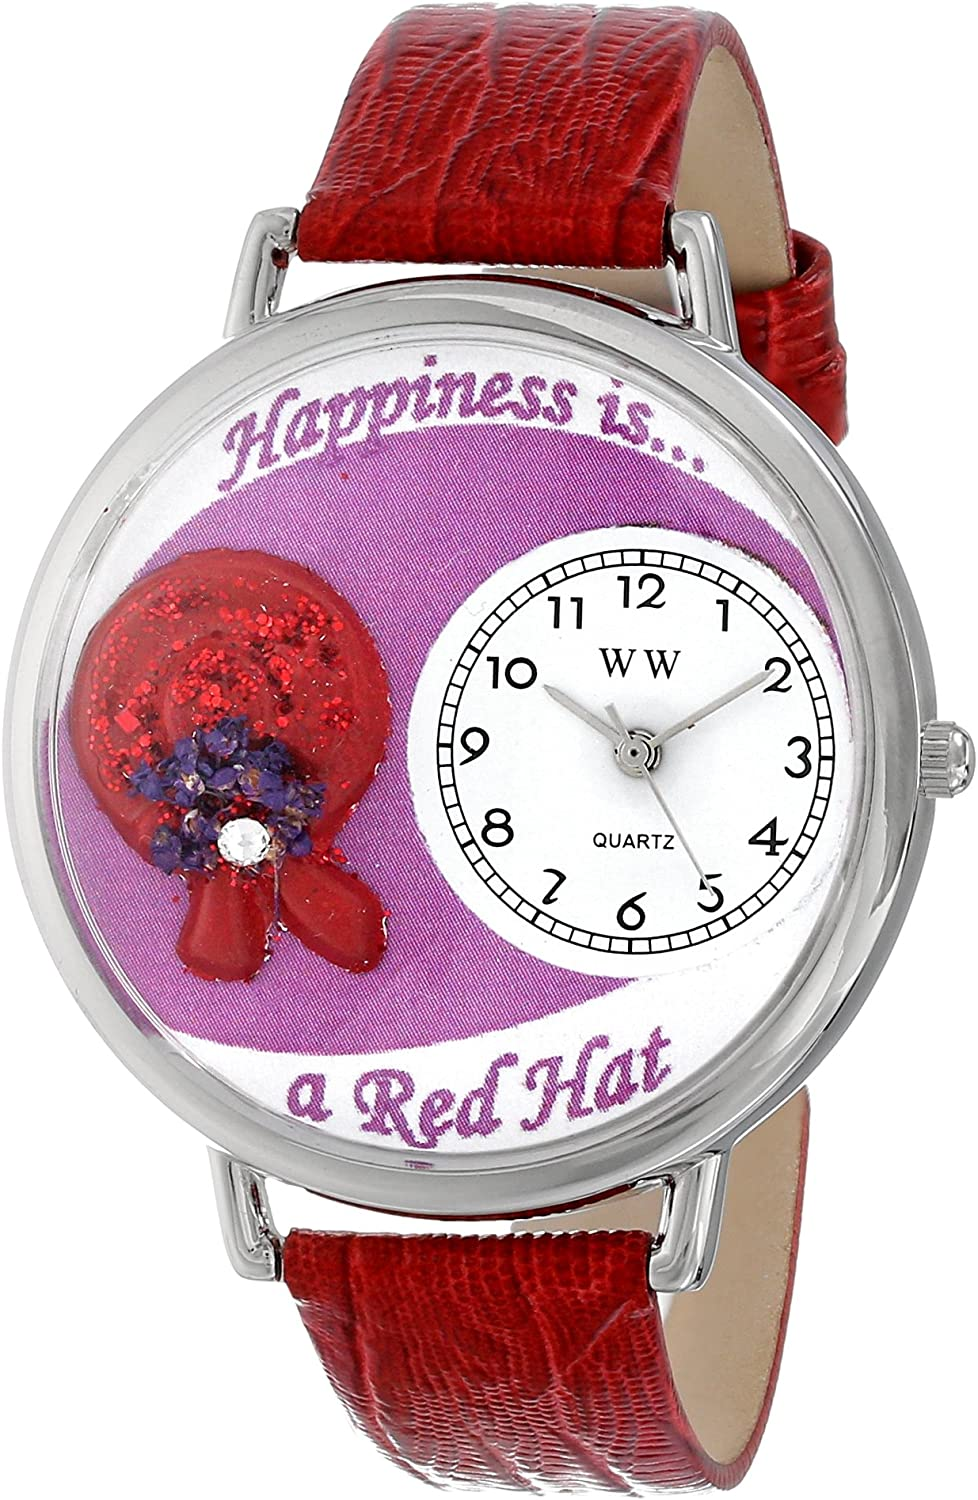 Whimsical Watches Unisex U0470007 Red Hat Red Leather Watch